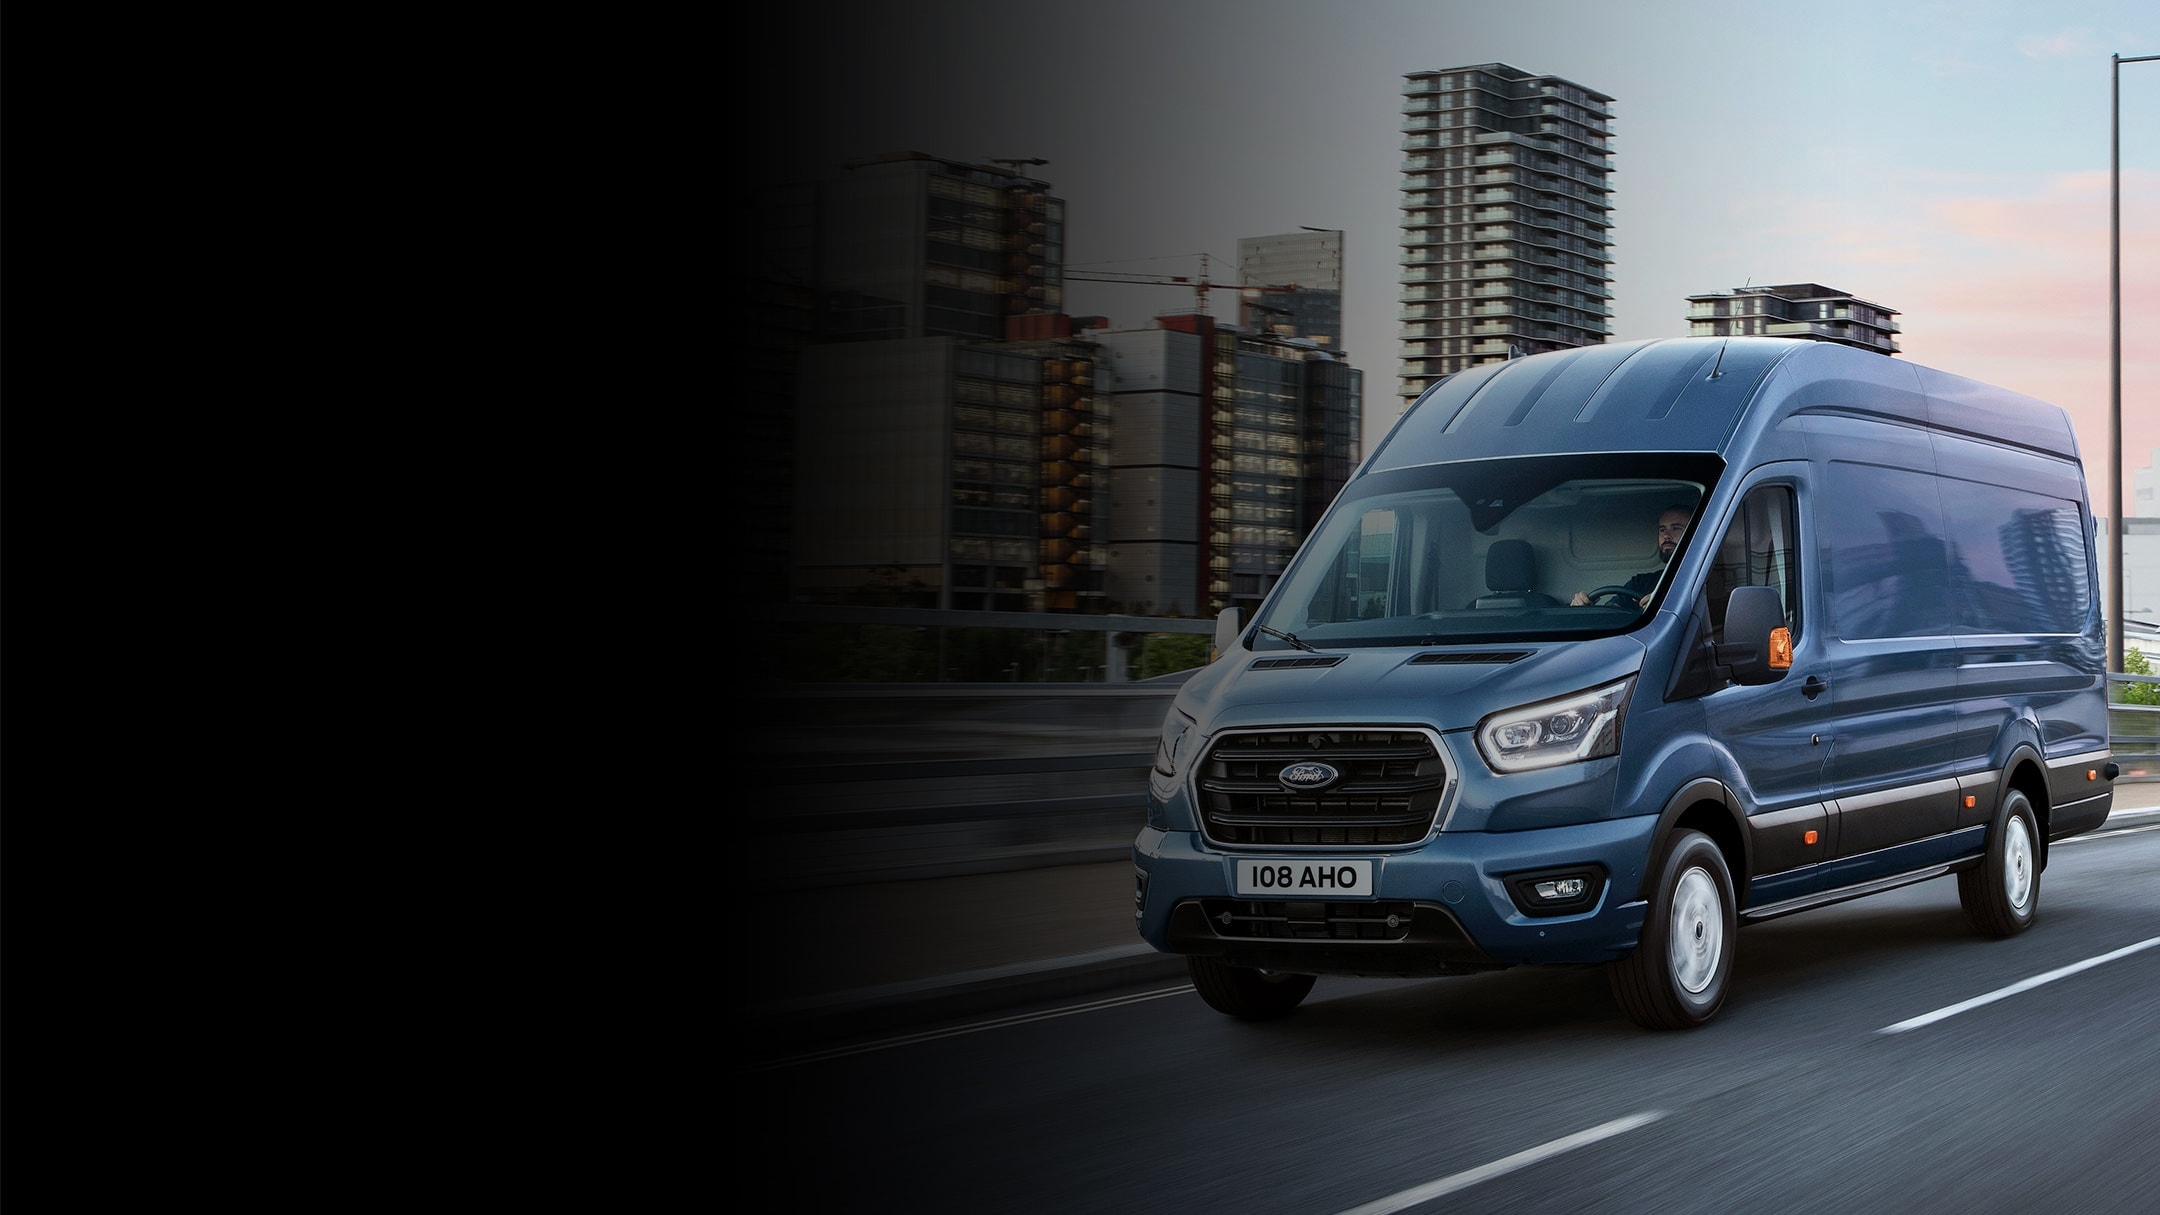 Ford Transit Van driving in city